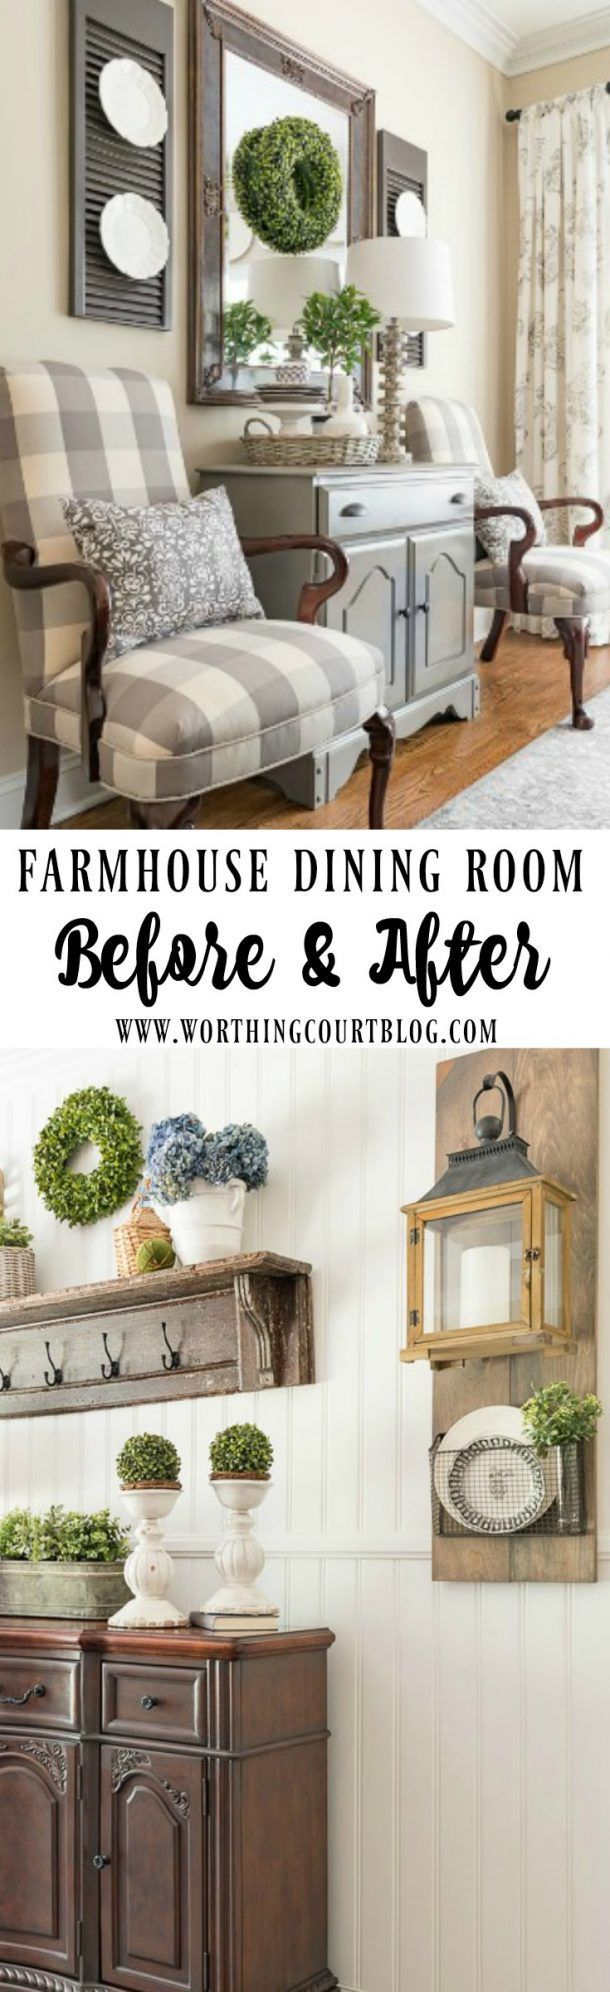 Farmhouse Dining Room Makeover Reveal - Before And After